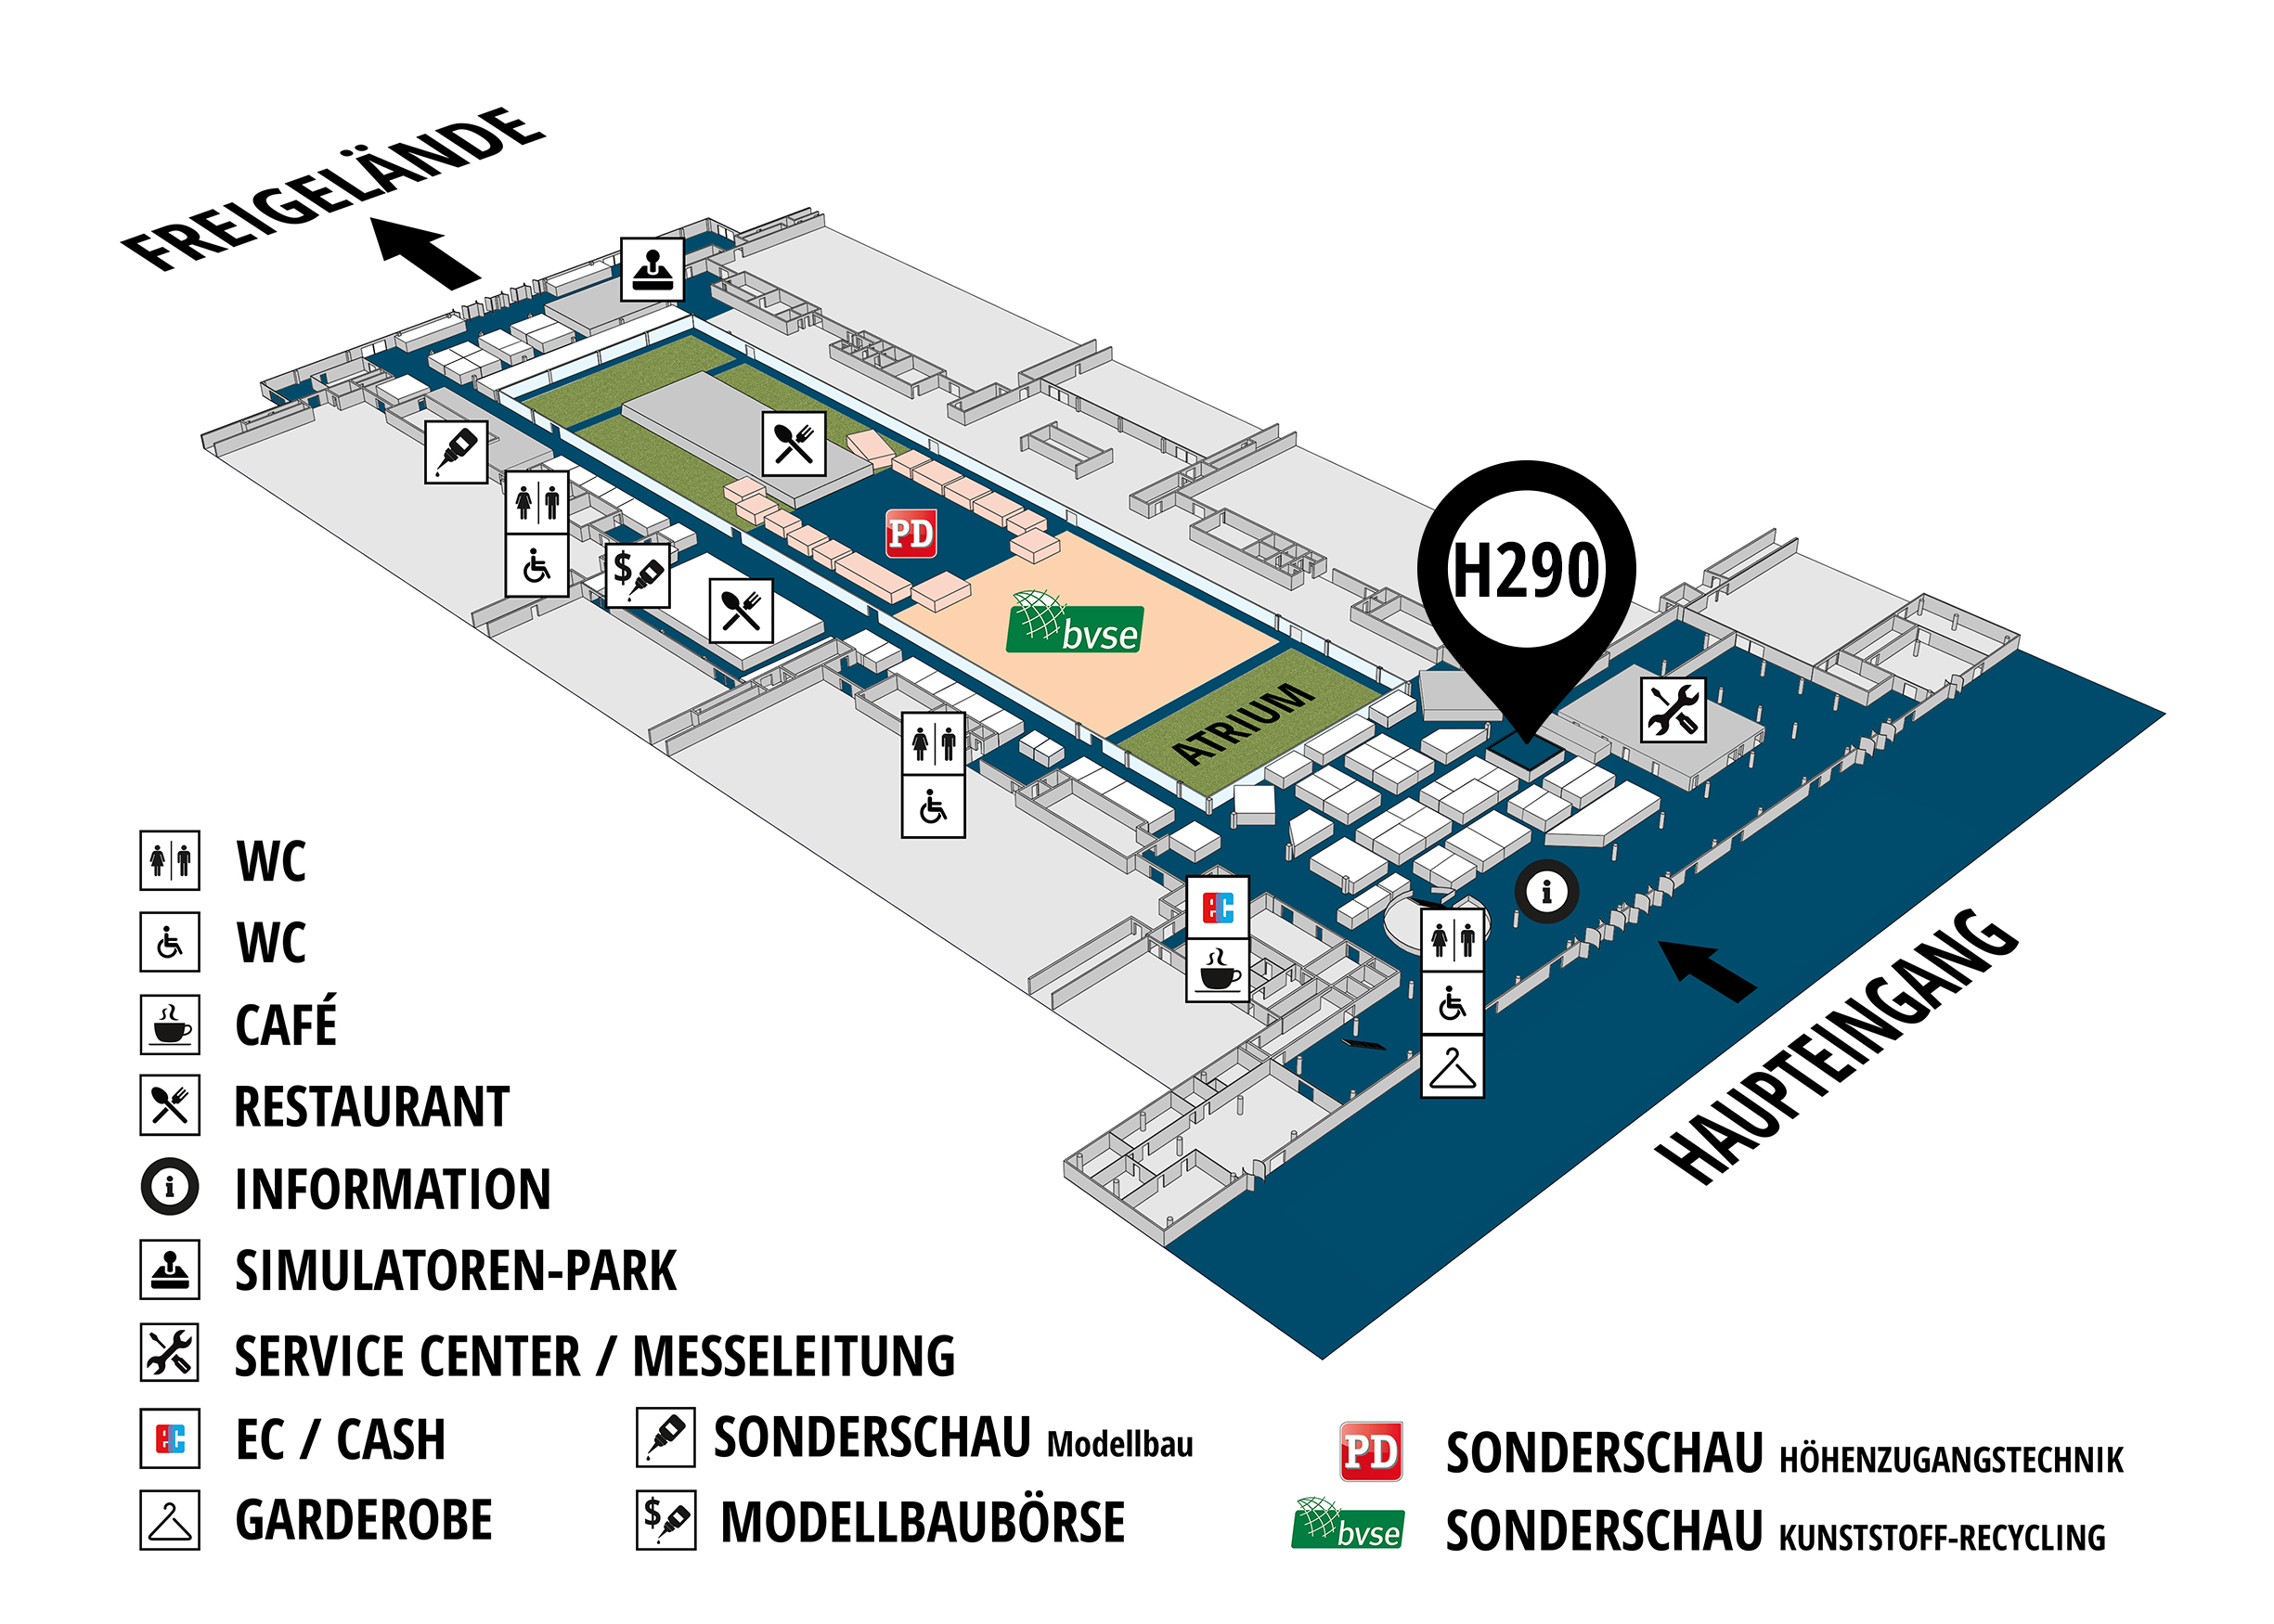 RecyclingAKTIV & TiefbauLIVE 2019. The Demonstration Trade Fairs ||Demonstration trade fair for waste removal and recycling. Demonstration trade fair for road construction and civil engineering. hall map (Visitors circuit): stand H290